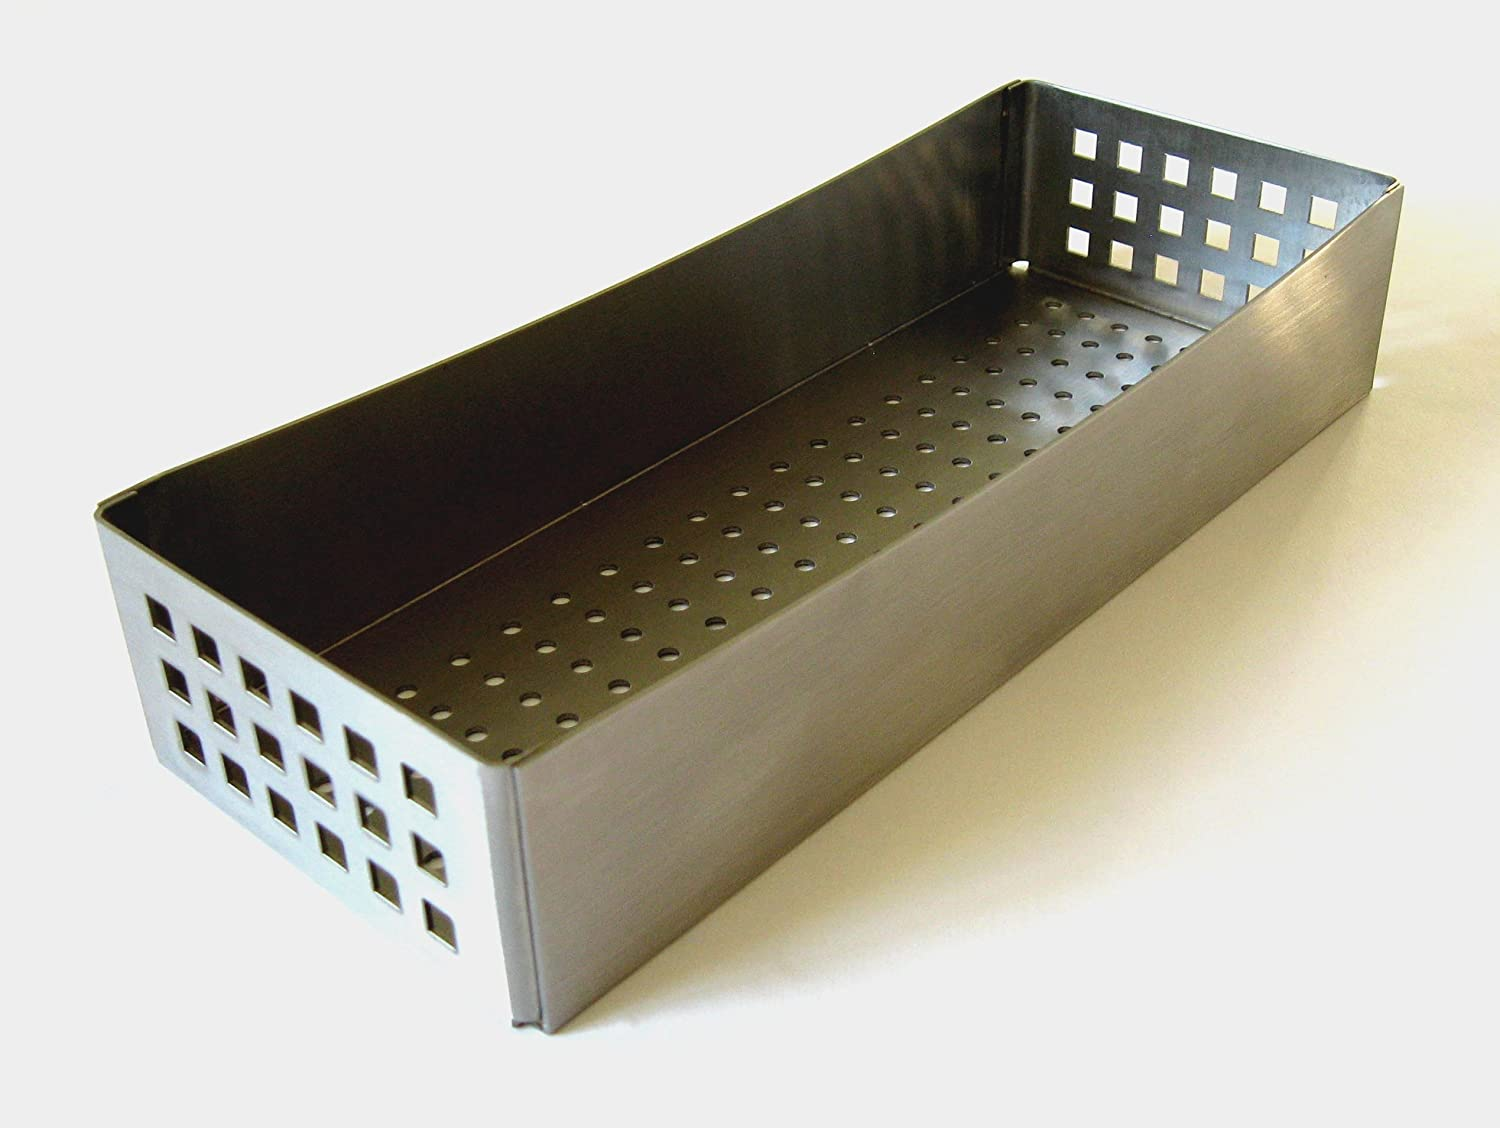 Zojila Palena Limited price Detroit Mall Utensil and Cutlery Tray Steel Brushed Stainless